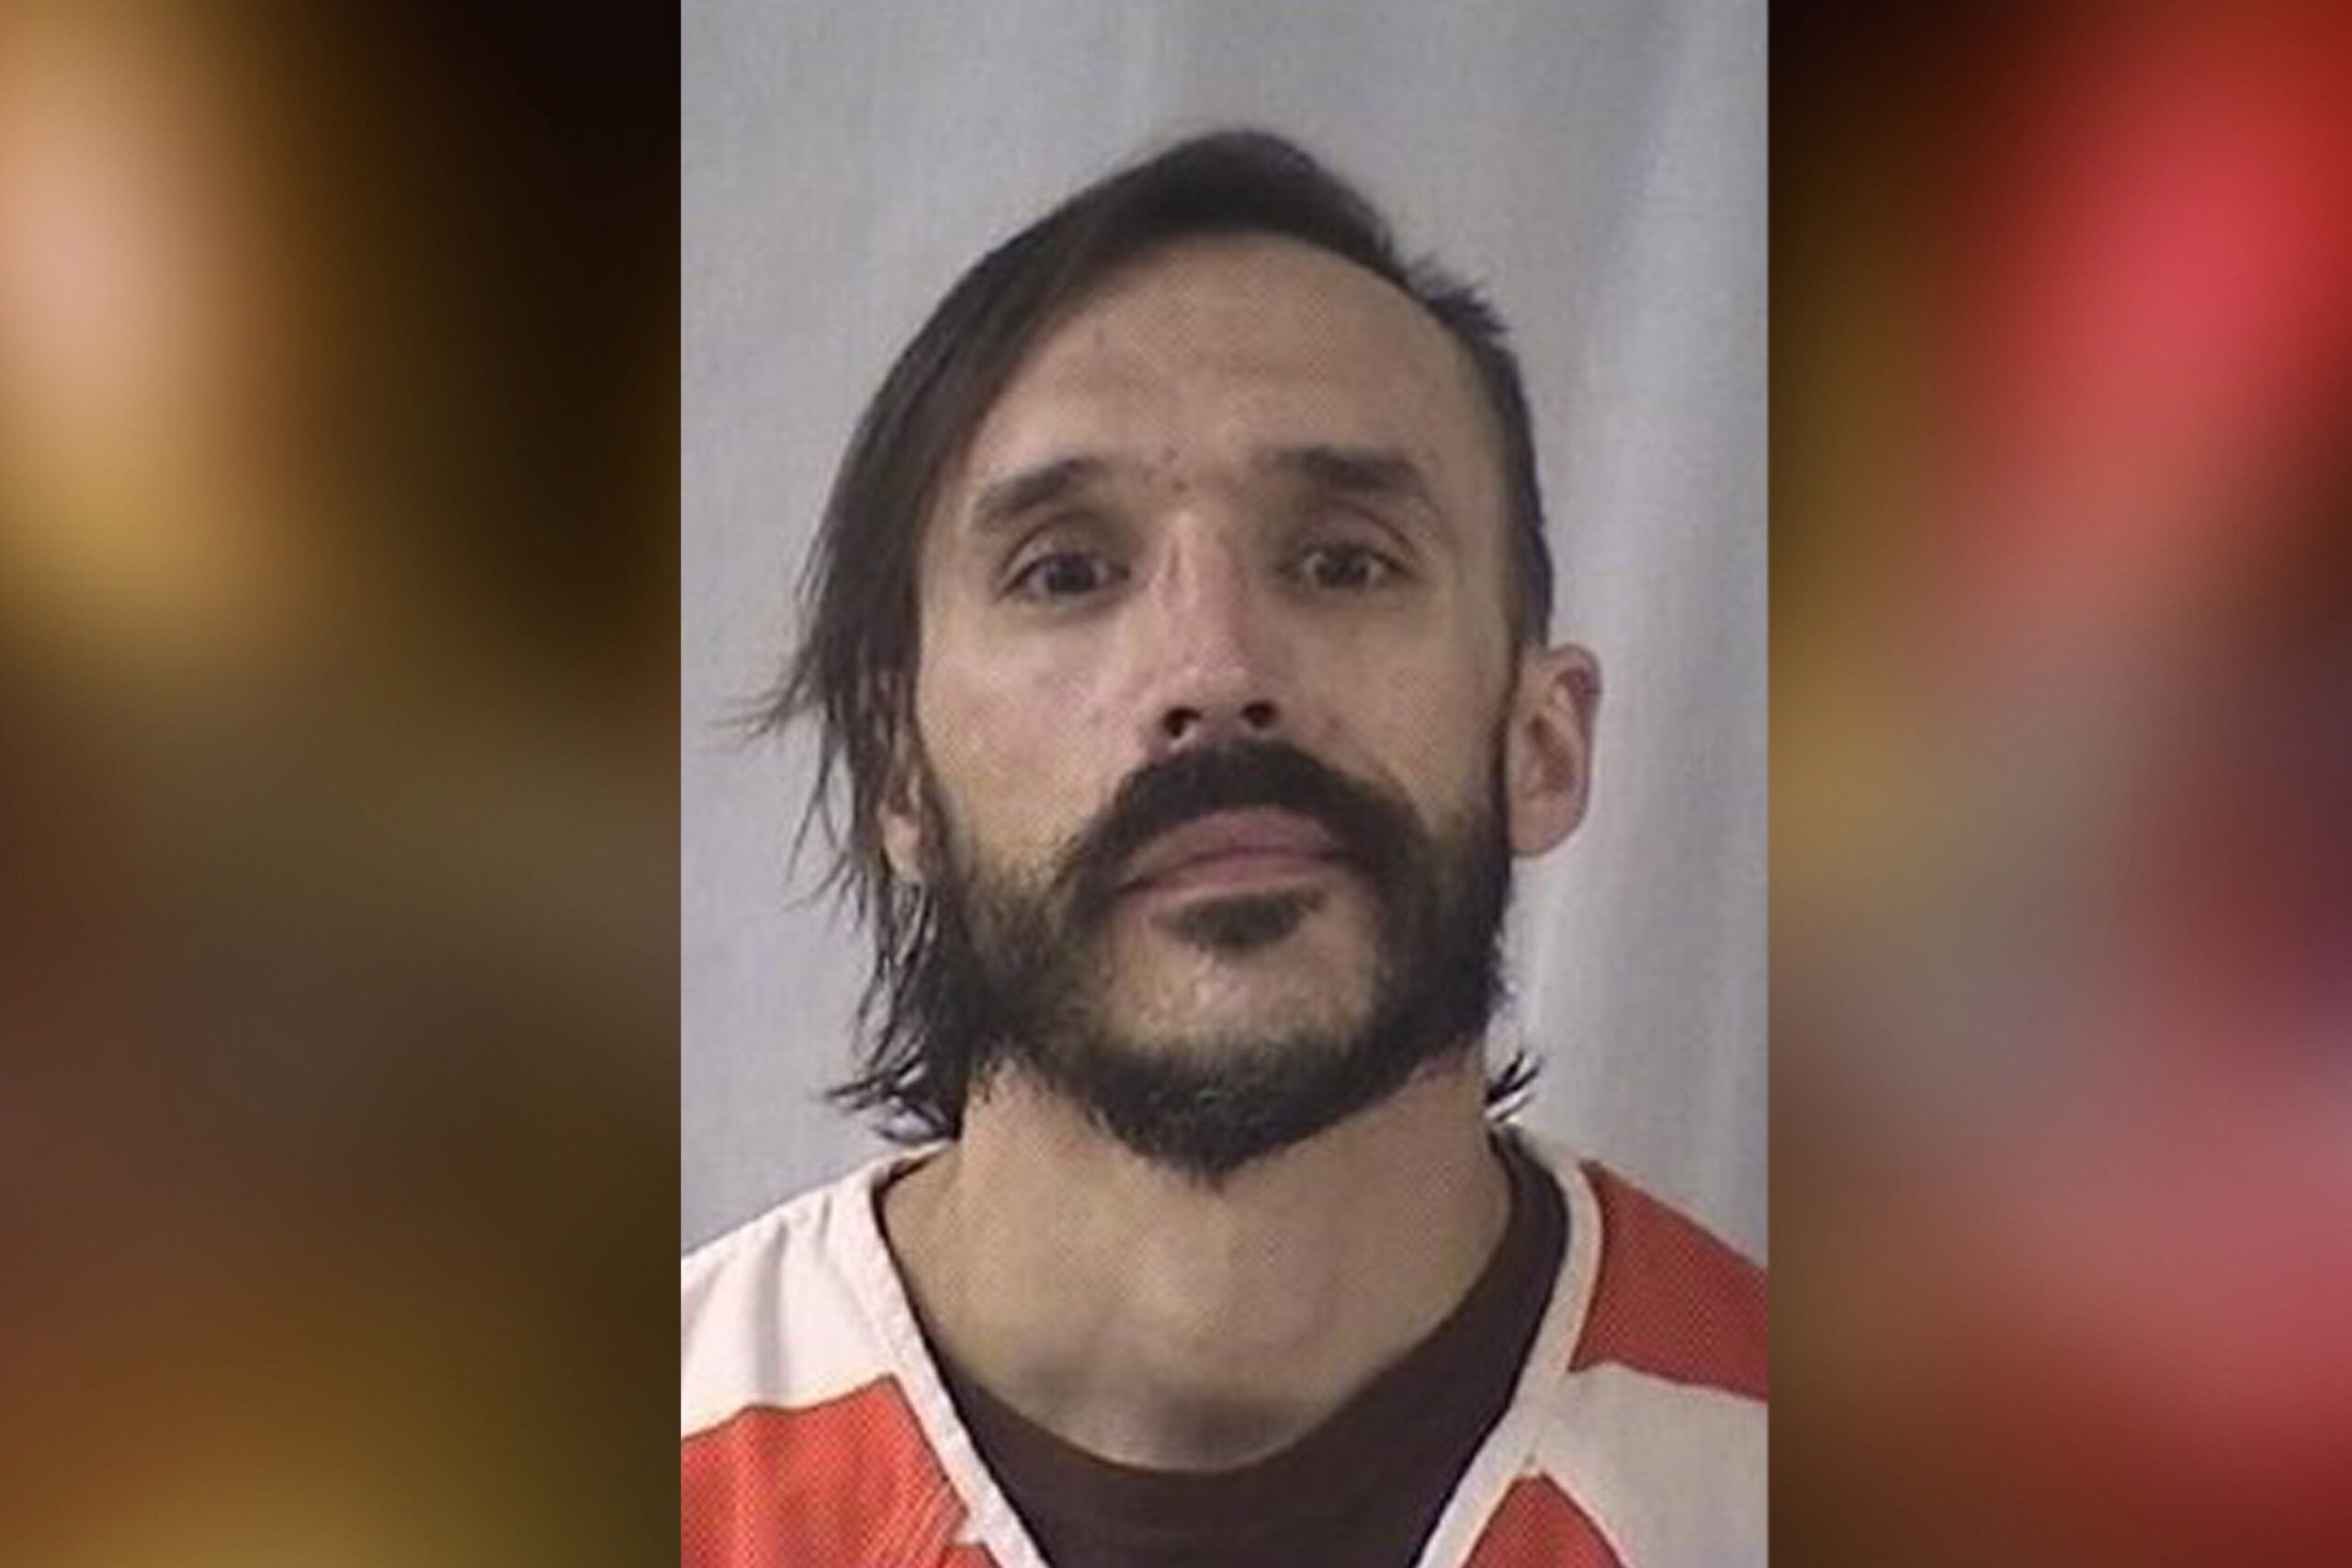 Cheyenne man arrested, accused of stealing nude photos